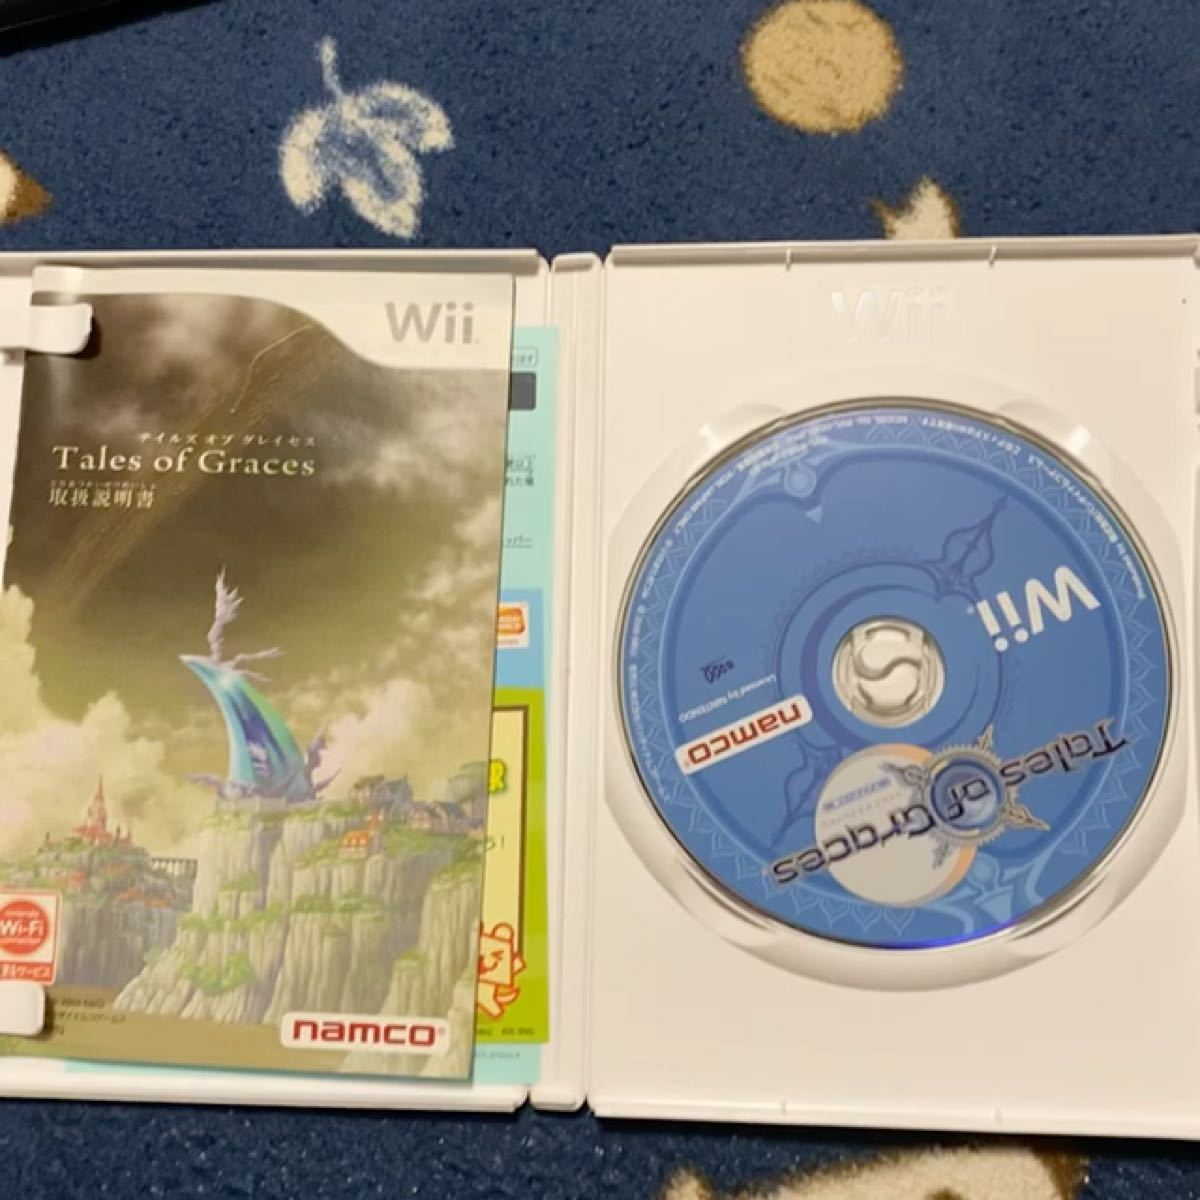 Wii tale of gracesソフト